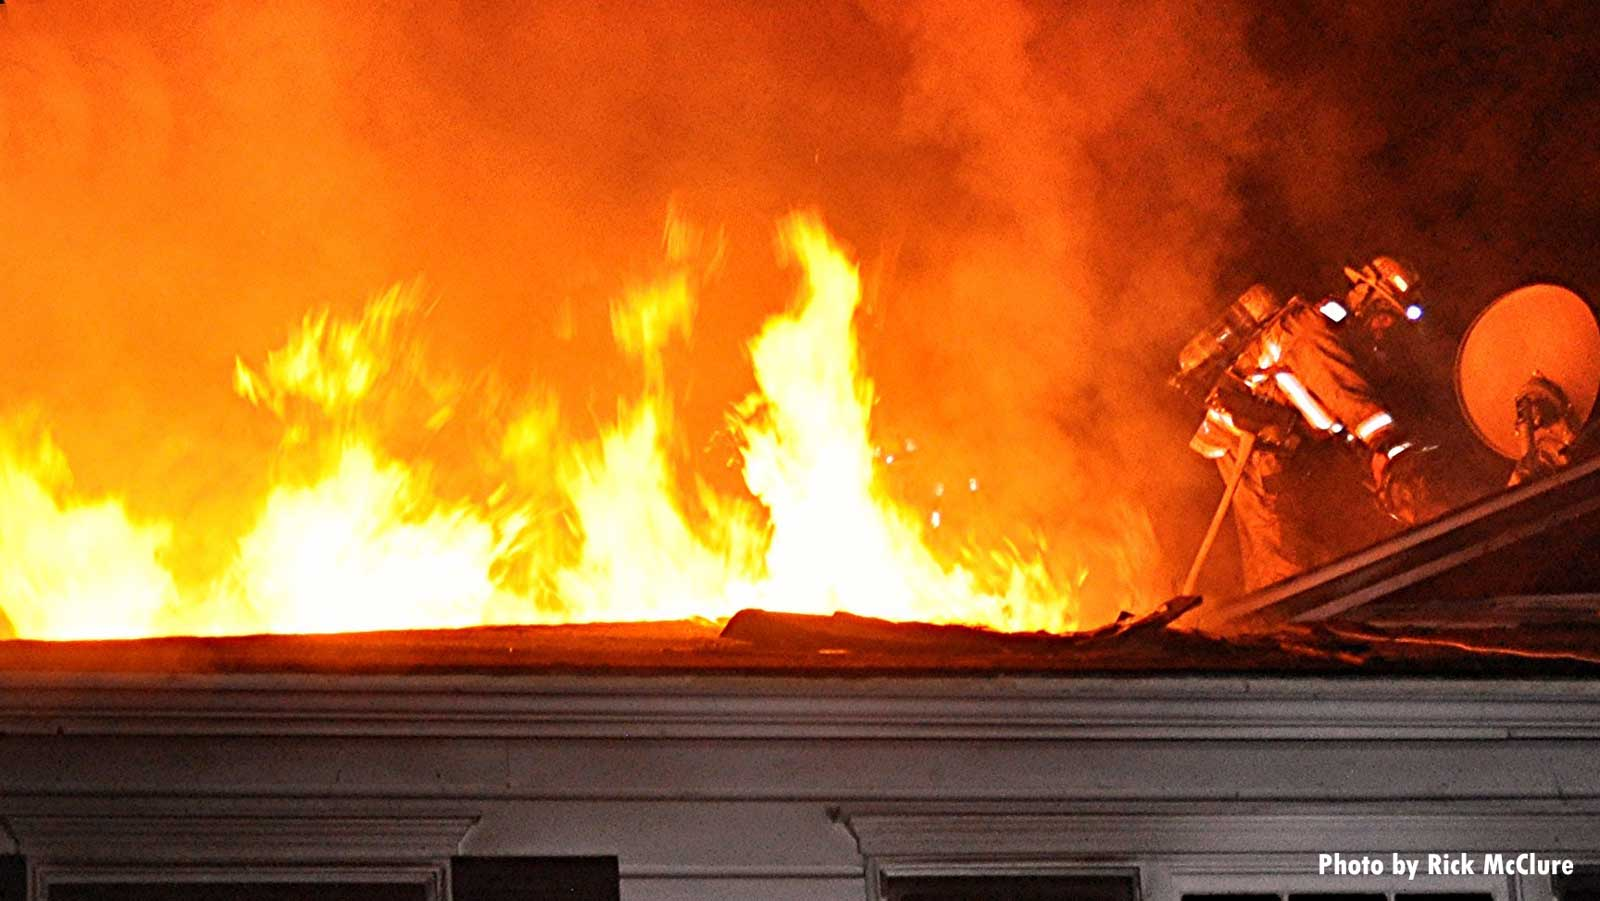 A firefighter on the roof with flames shooting through it